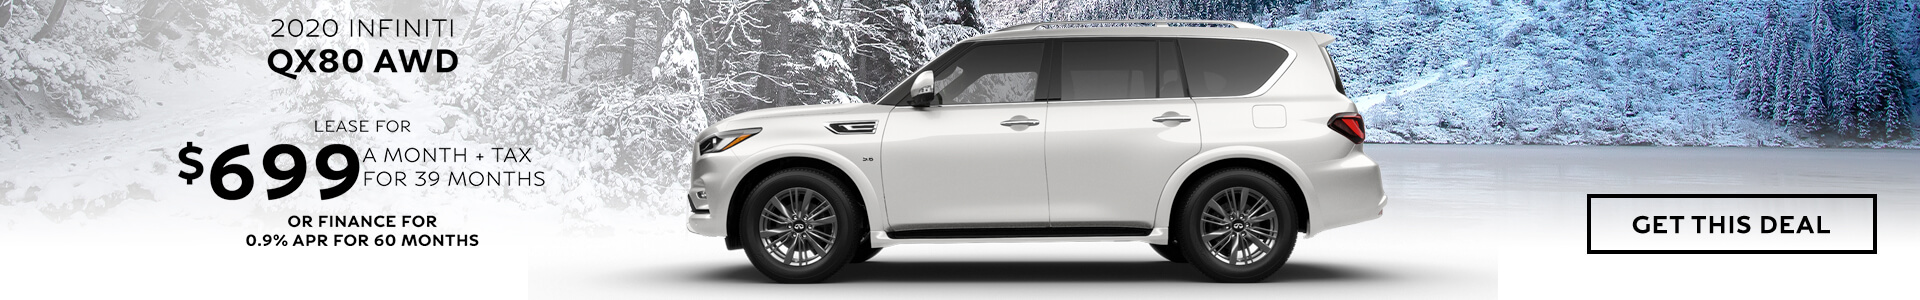 QX80 - Lease for $699